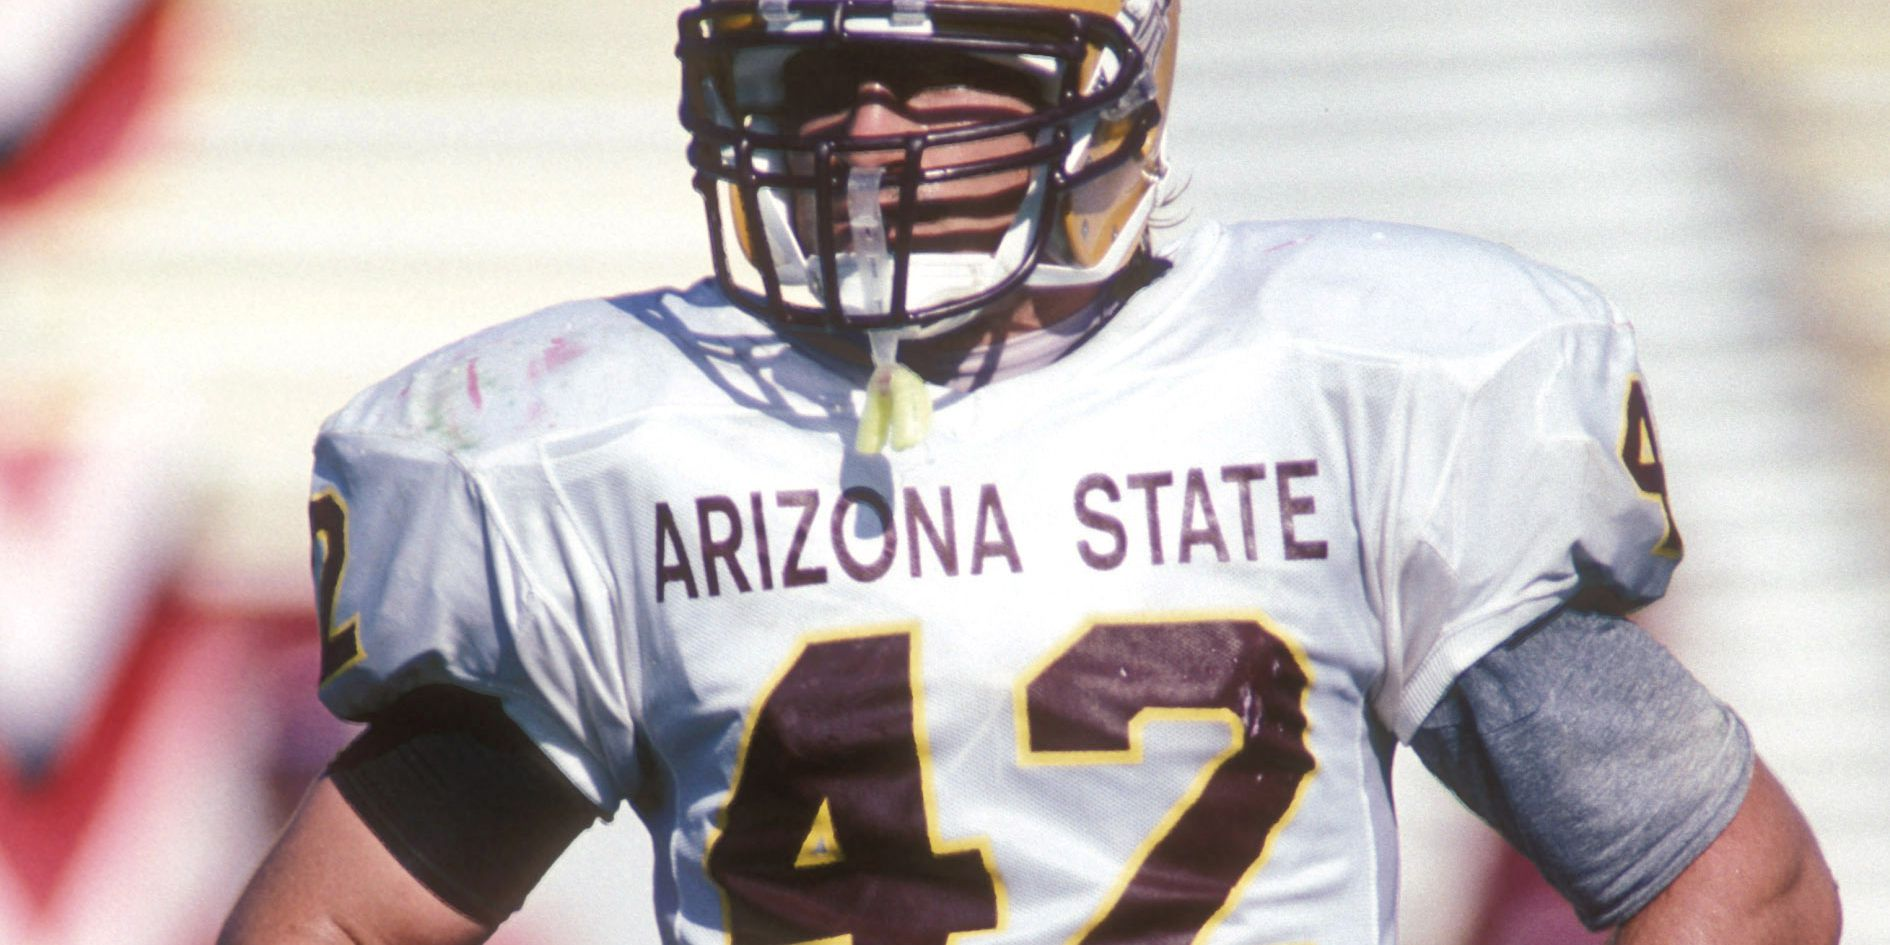 ASU's Hawaii Club to host run to honor former football star Pat Tillman